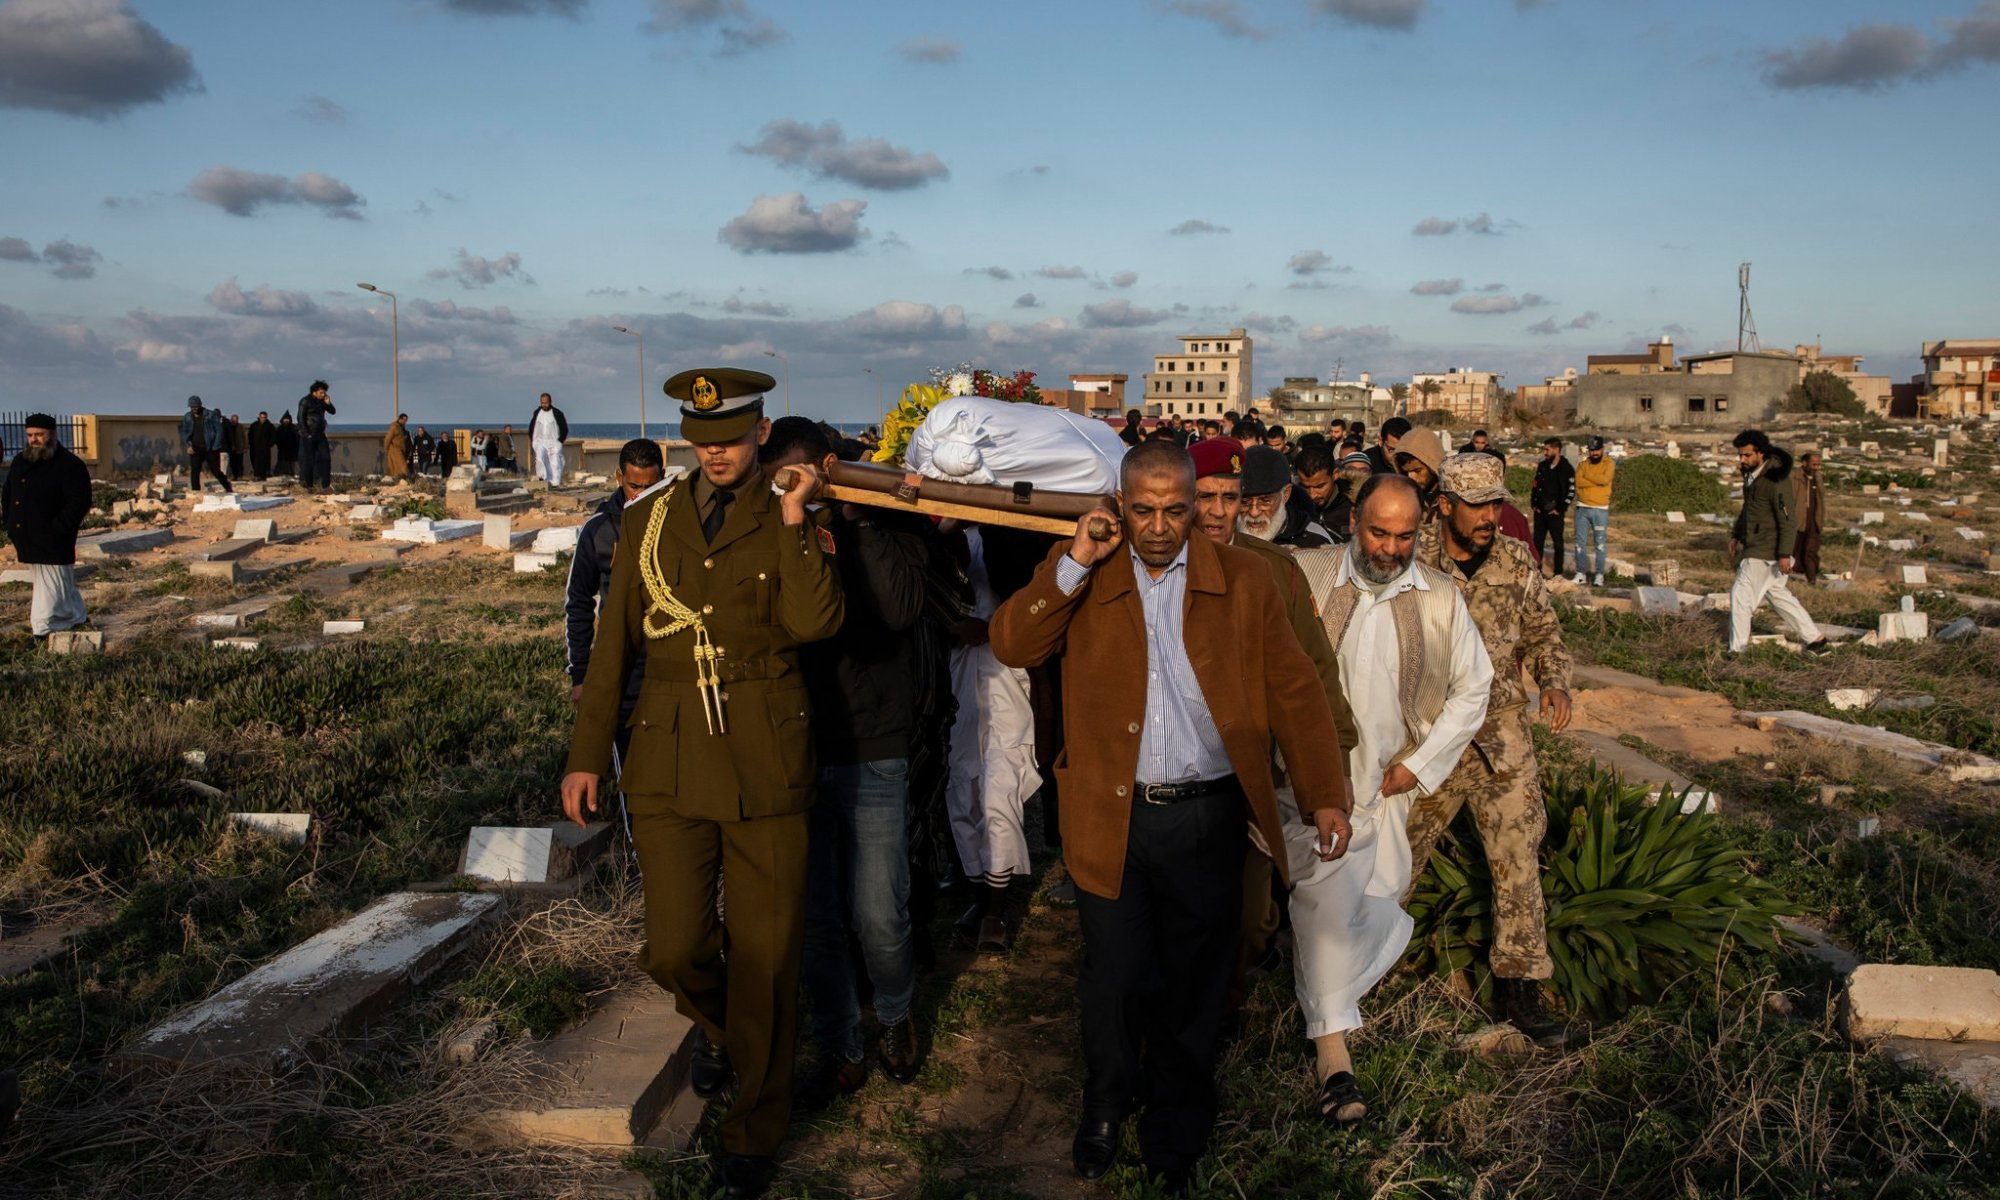 People carrying coffin at funeral in Libya